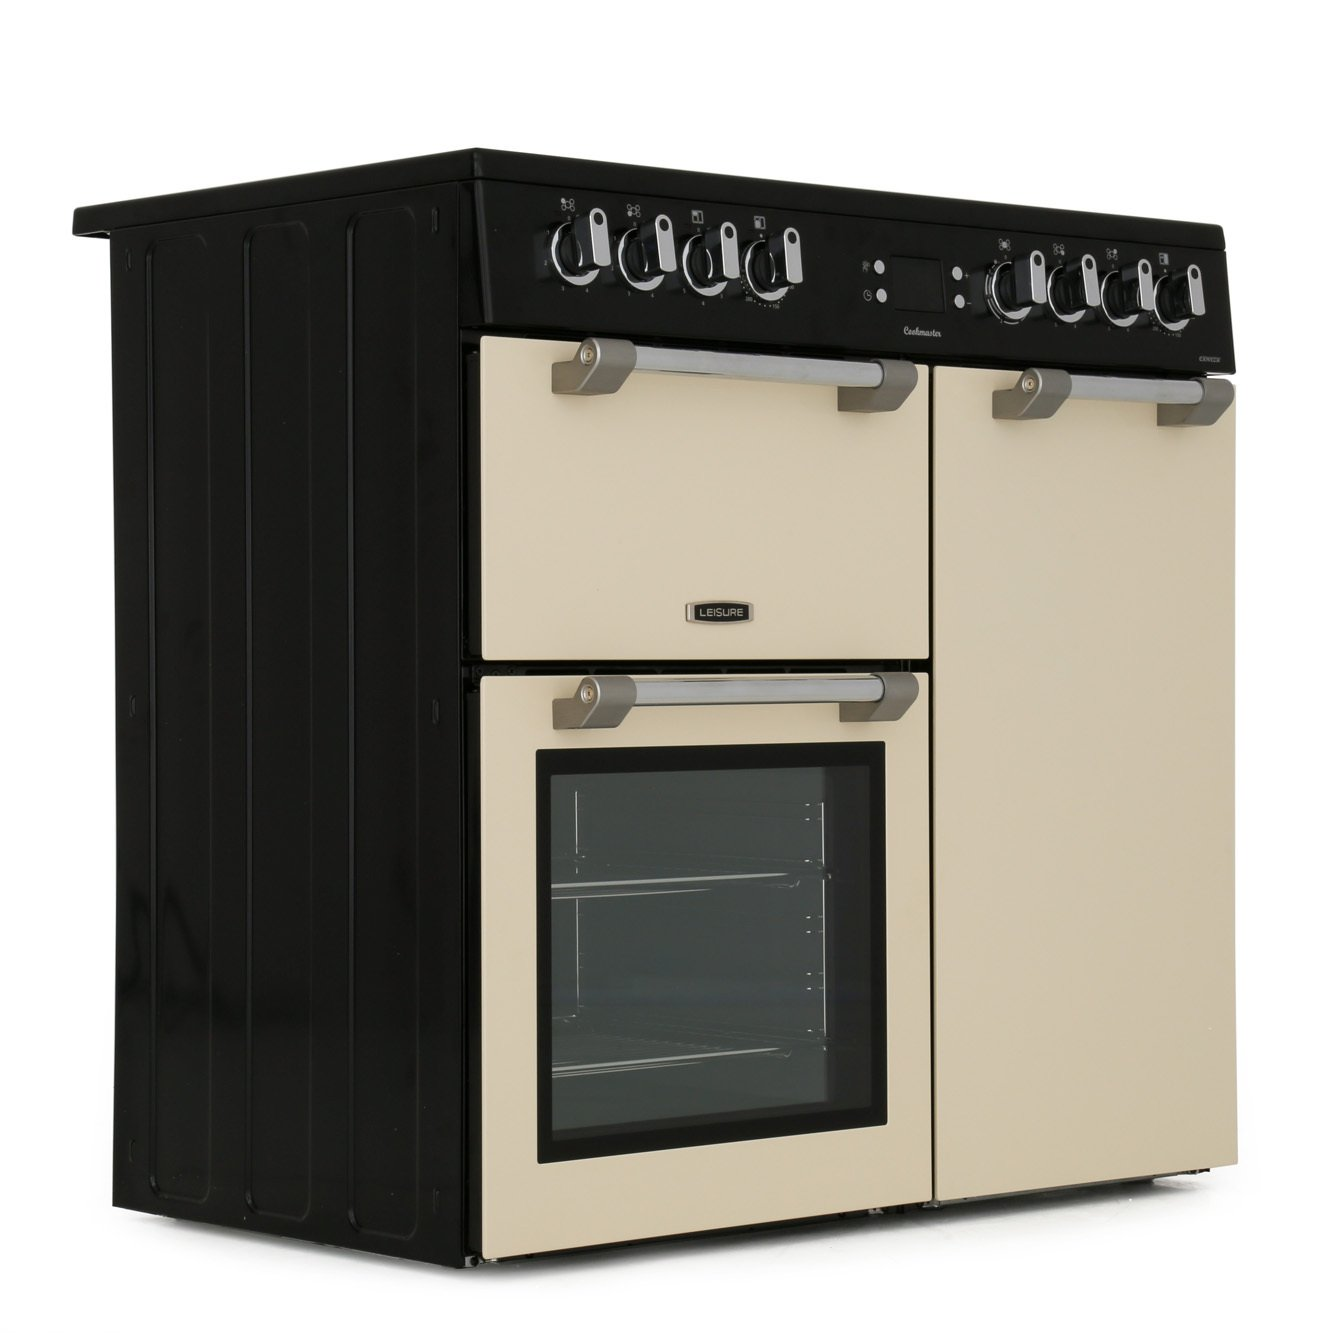 Leisure Cookmaster Ck90c230c 90cm Electric Range Cooker